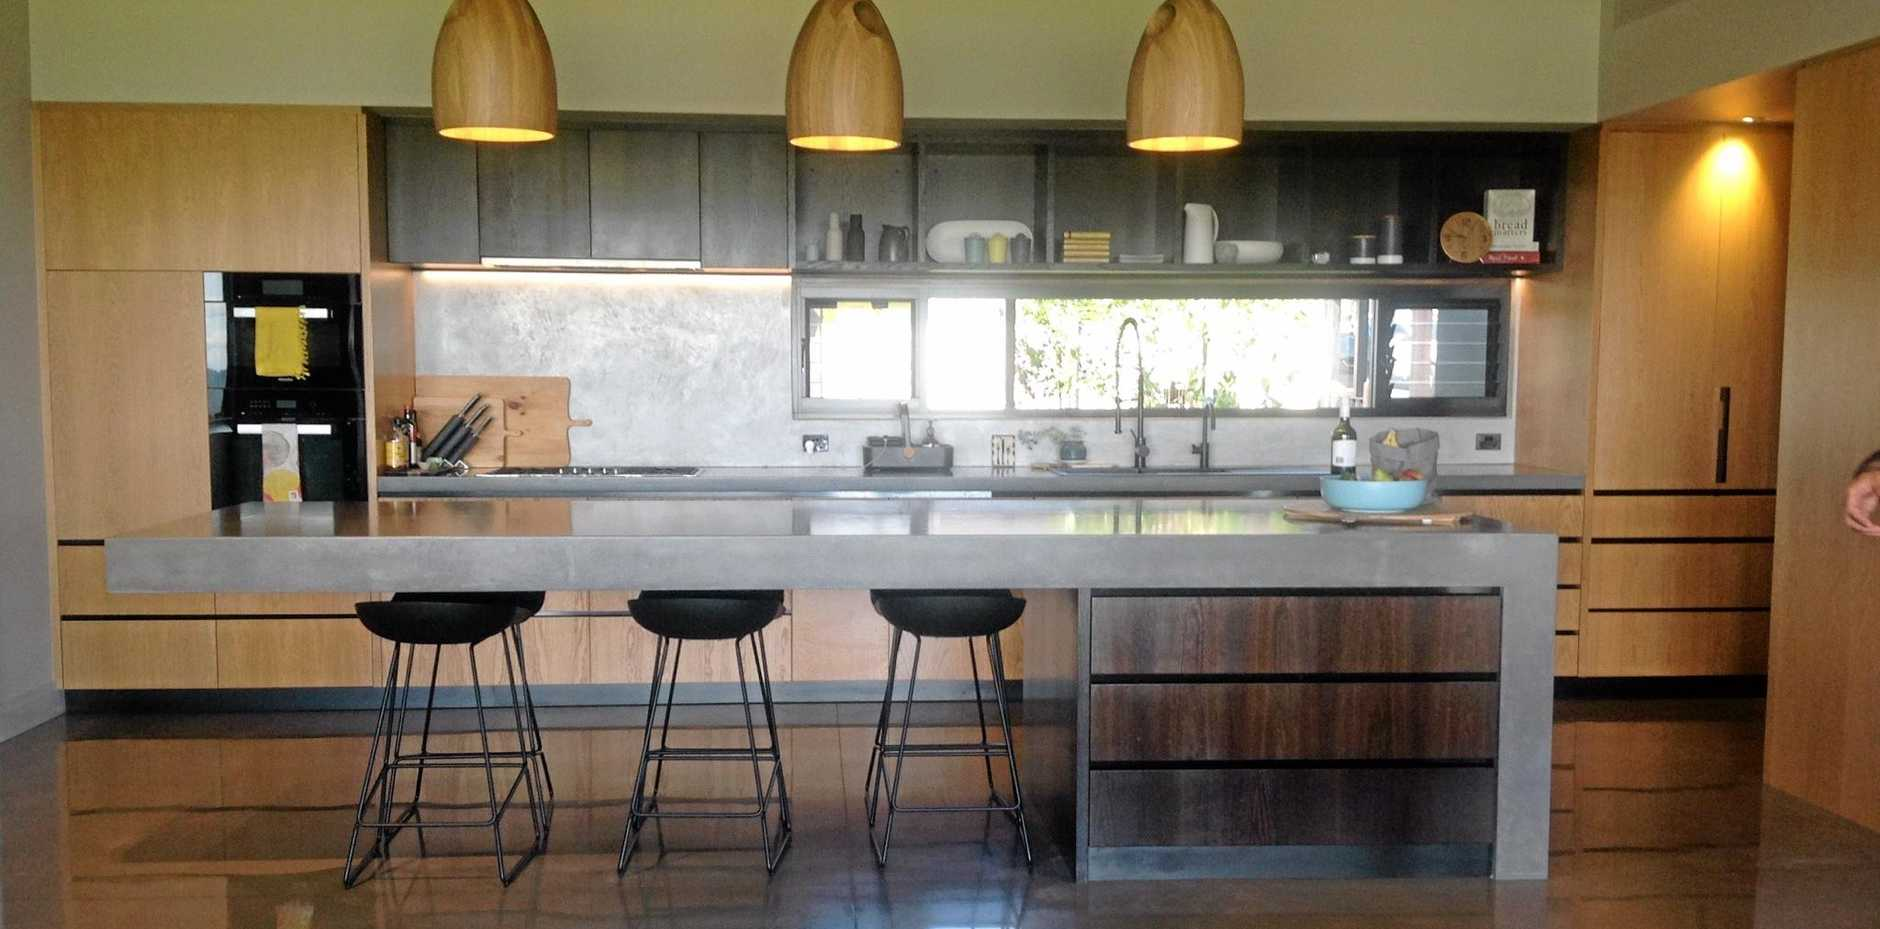 Cantilevered concrete bench featured in this stunning hinterland kitchen.